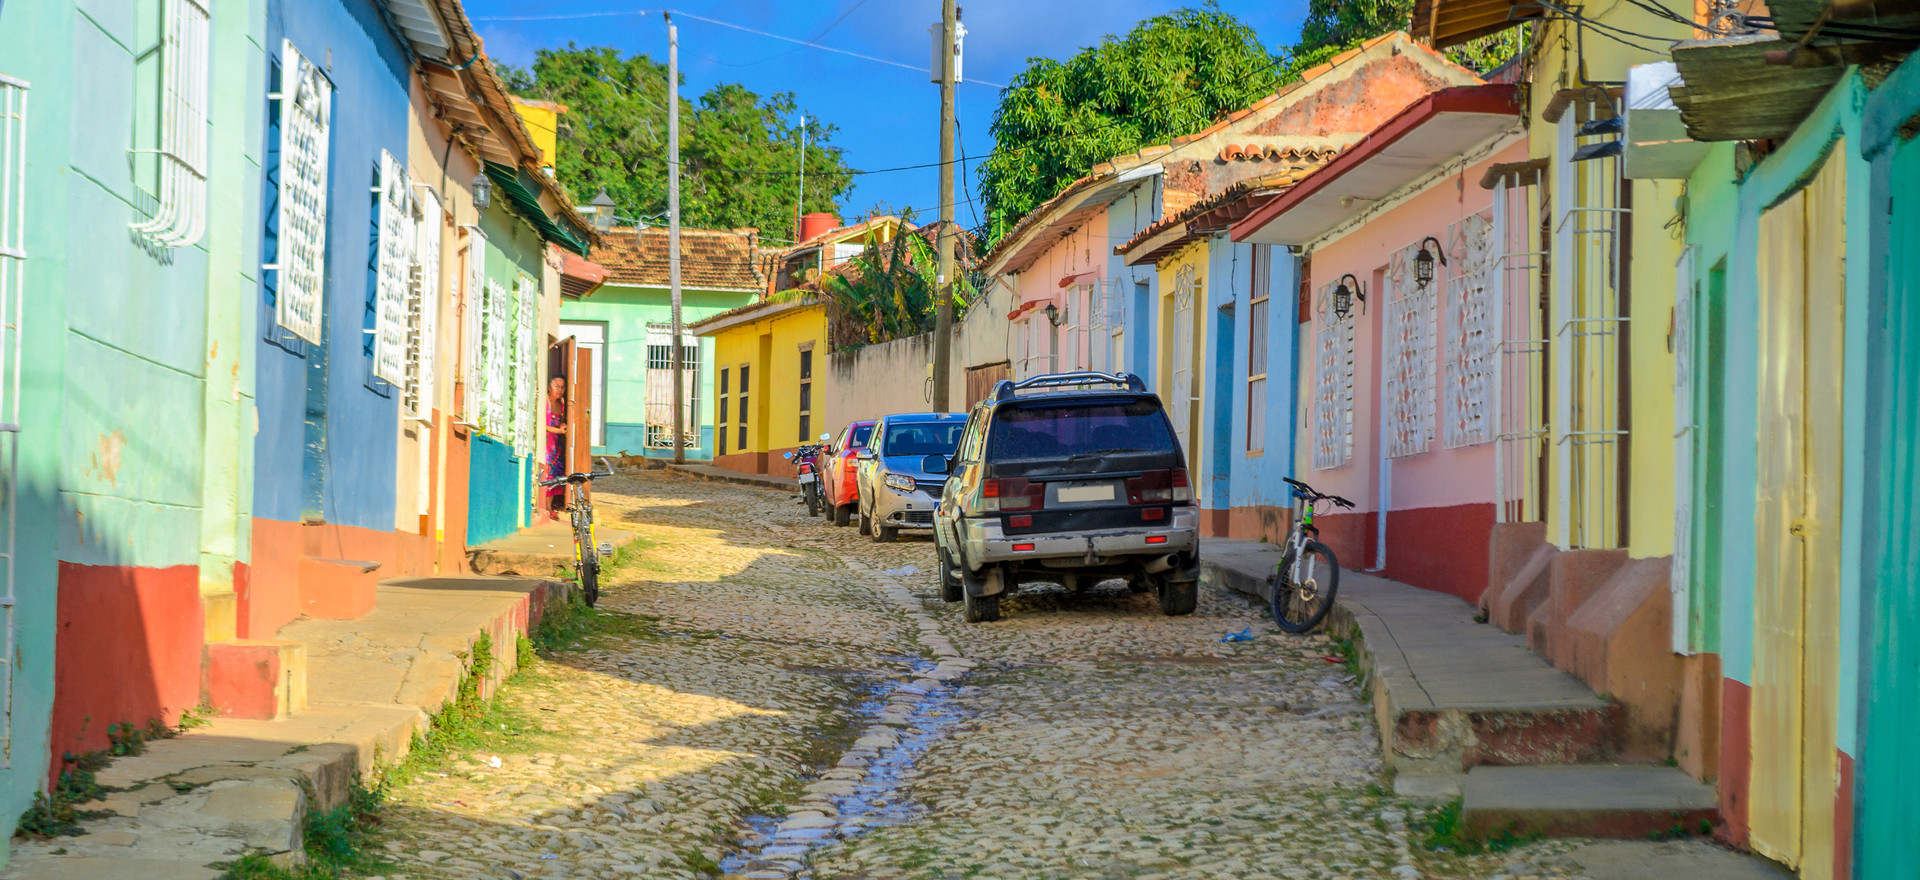 Walking through the colorful streets of DR